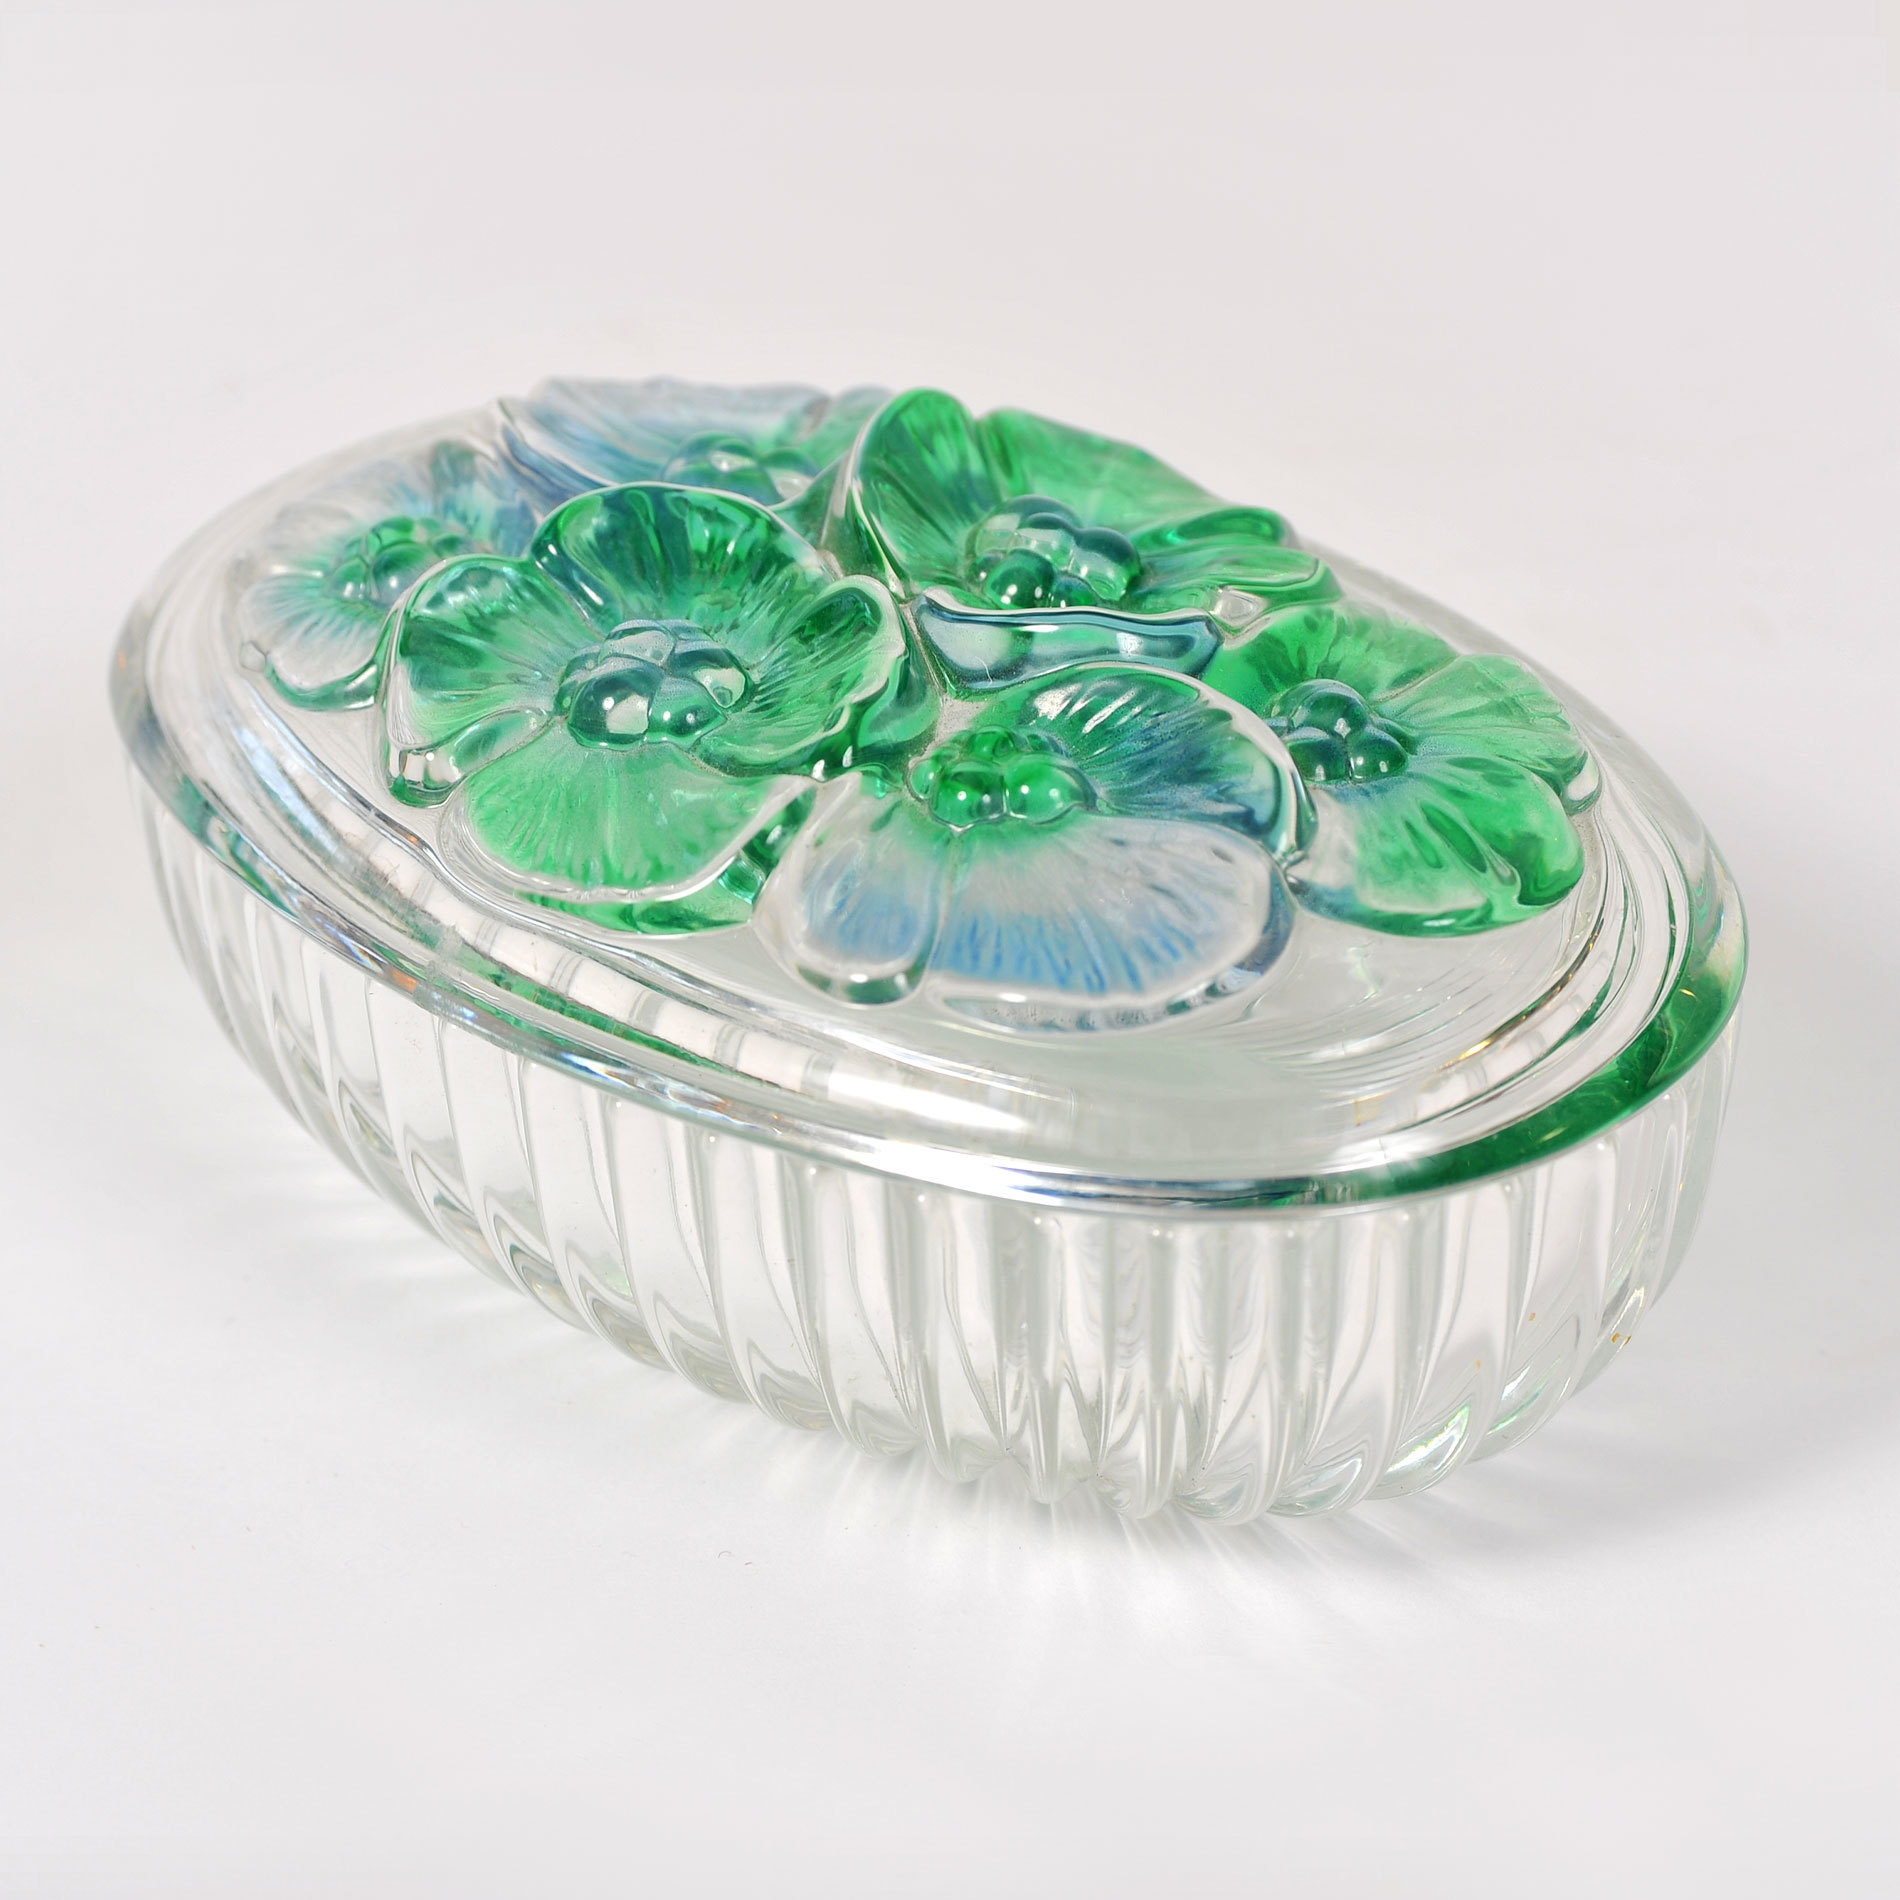 The image for Glass Lidded Bowl 03